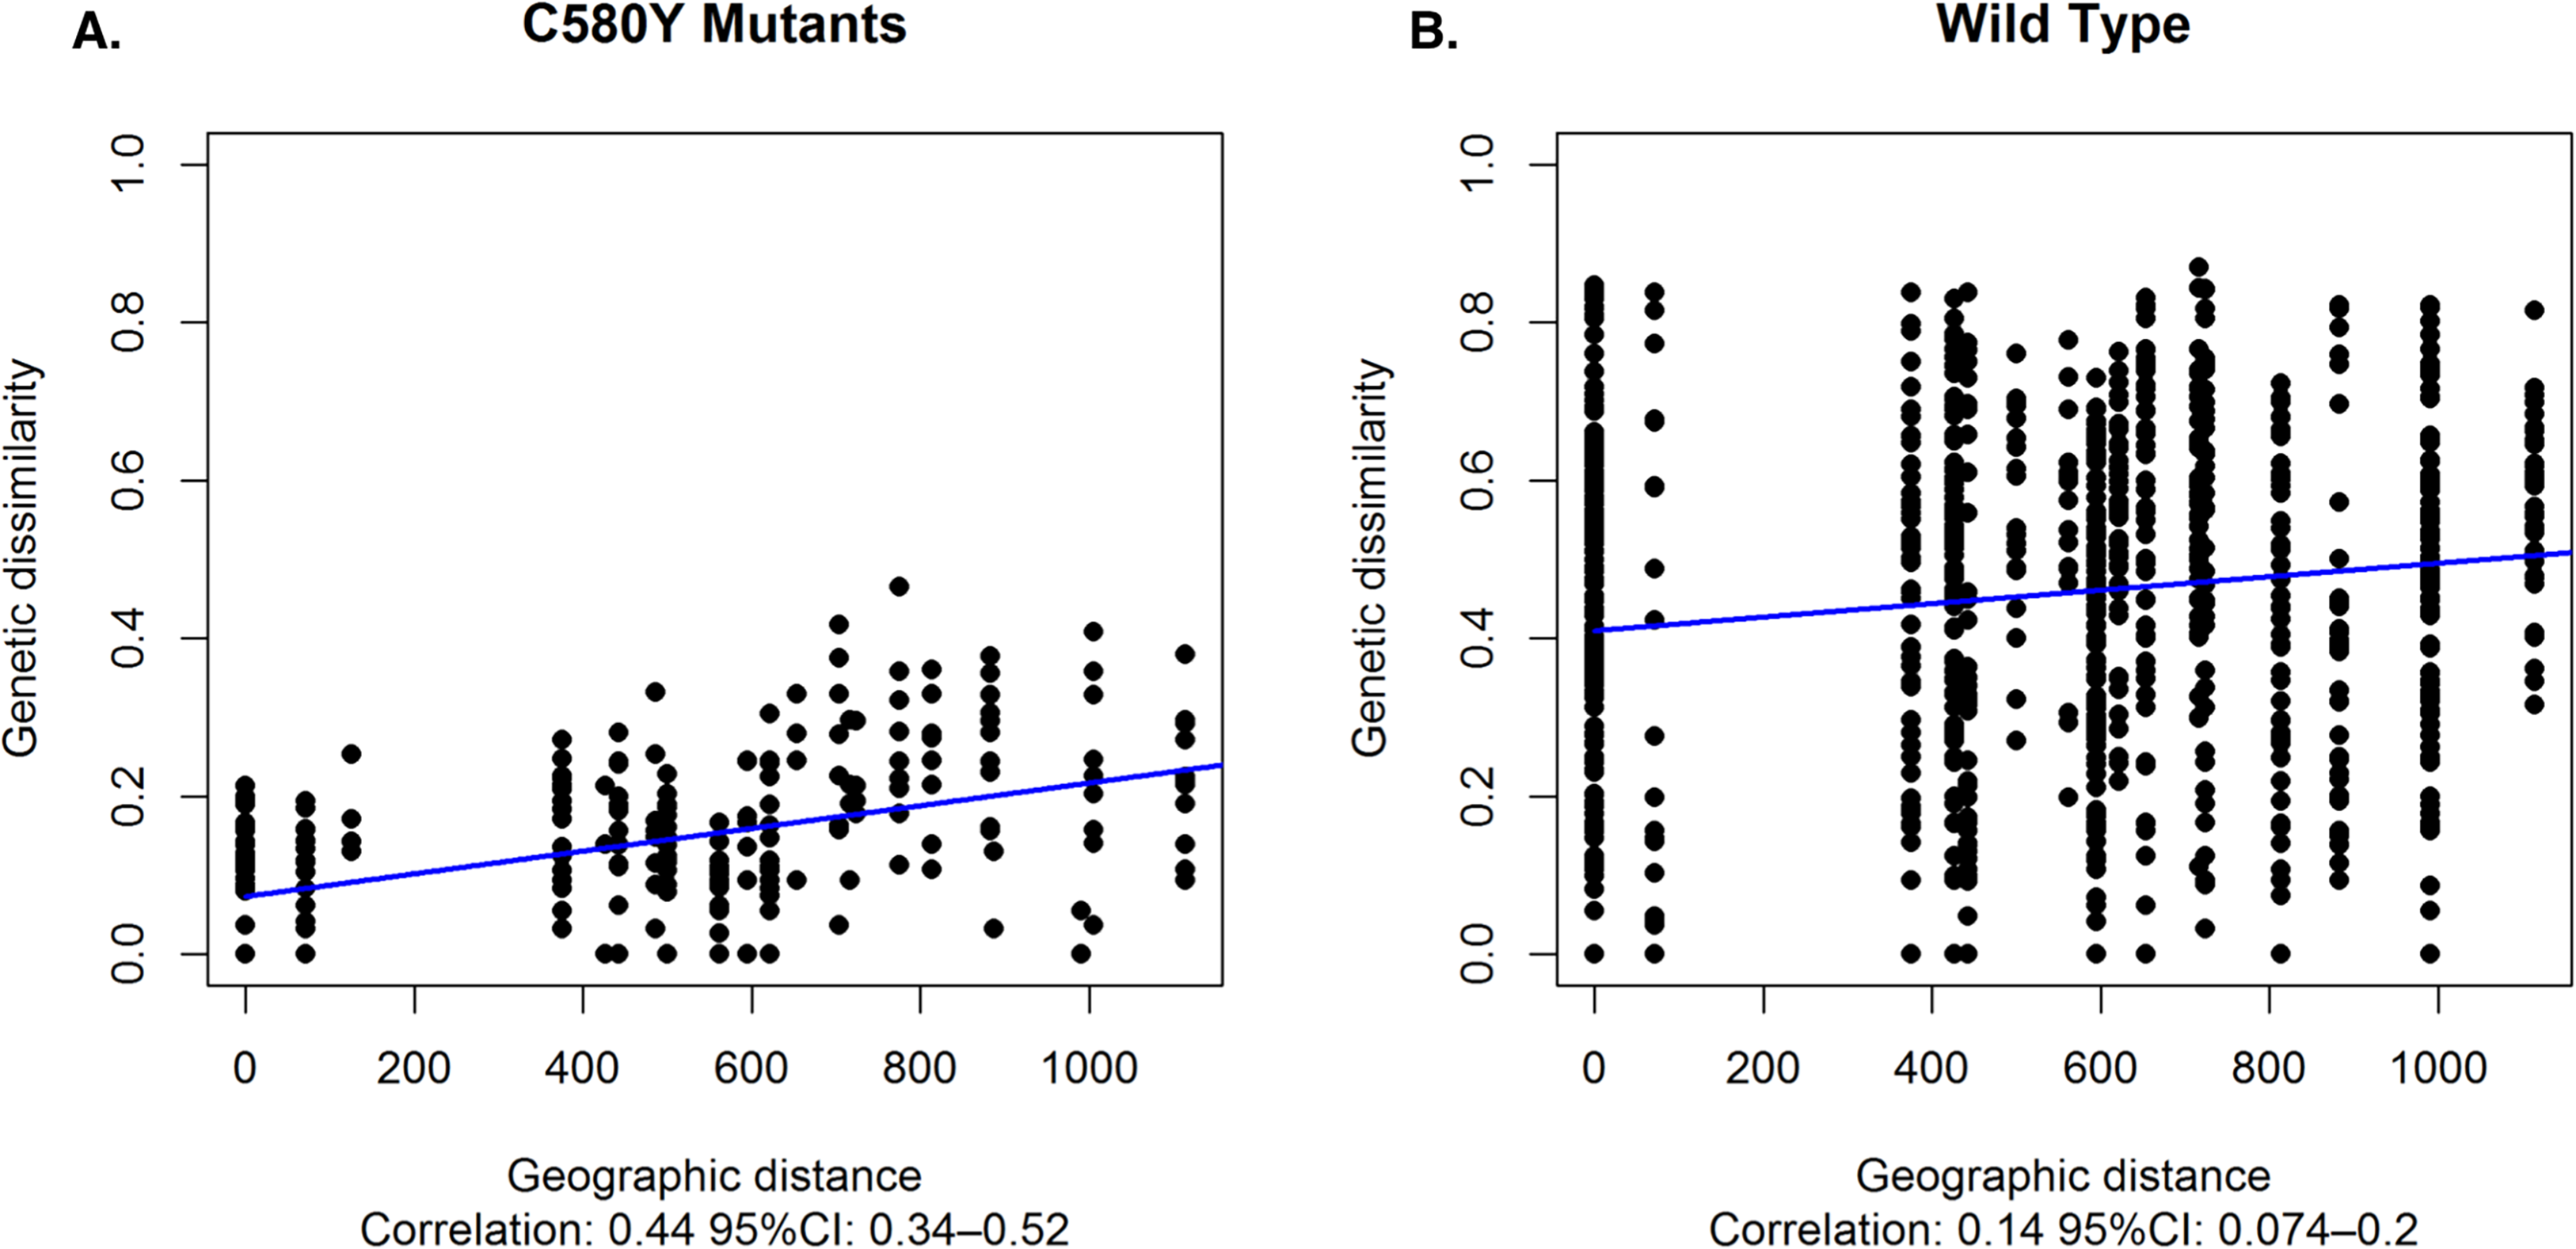 Association between genetic dissimilarity and geographic distance.